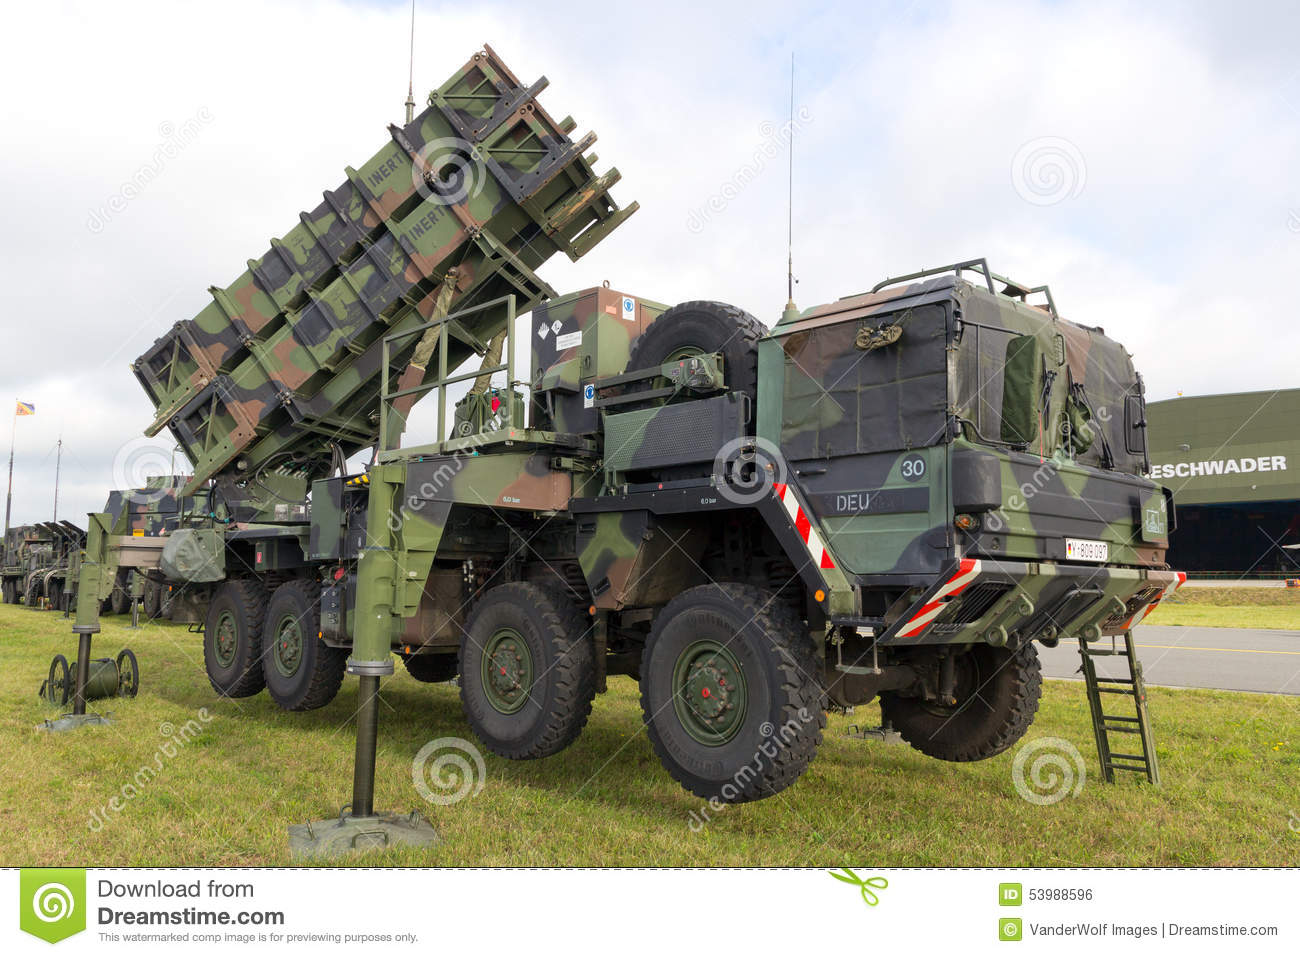 air missile (SAM) system on display during the Laage airbase open #8E813D